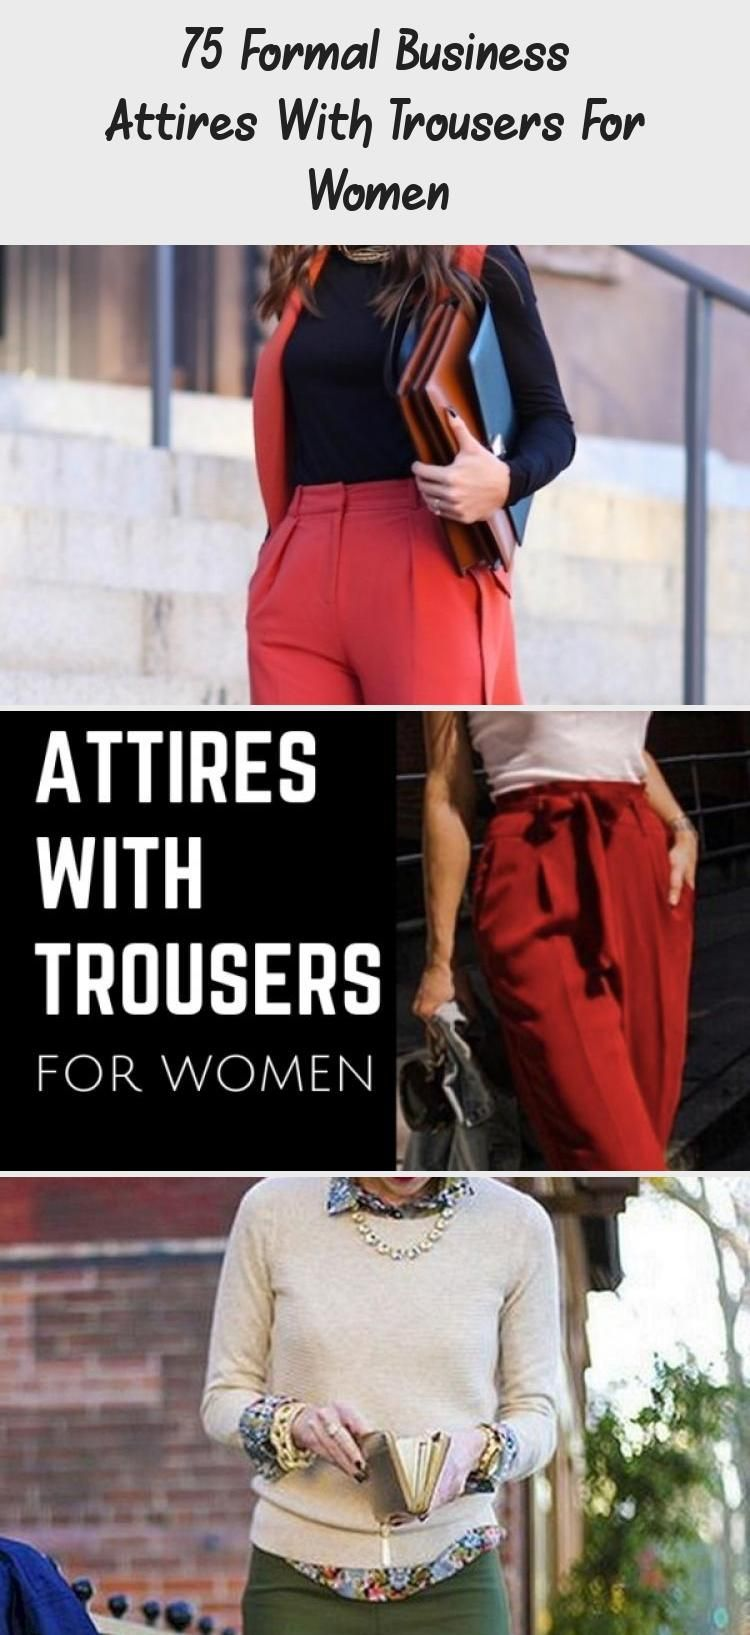 75 Formal Business Attires With Trousers For Women - OUTFIT #businessattireforyoungwomen